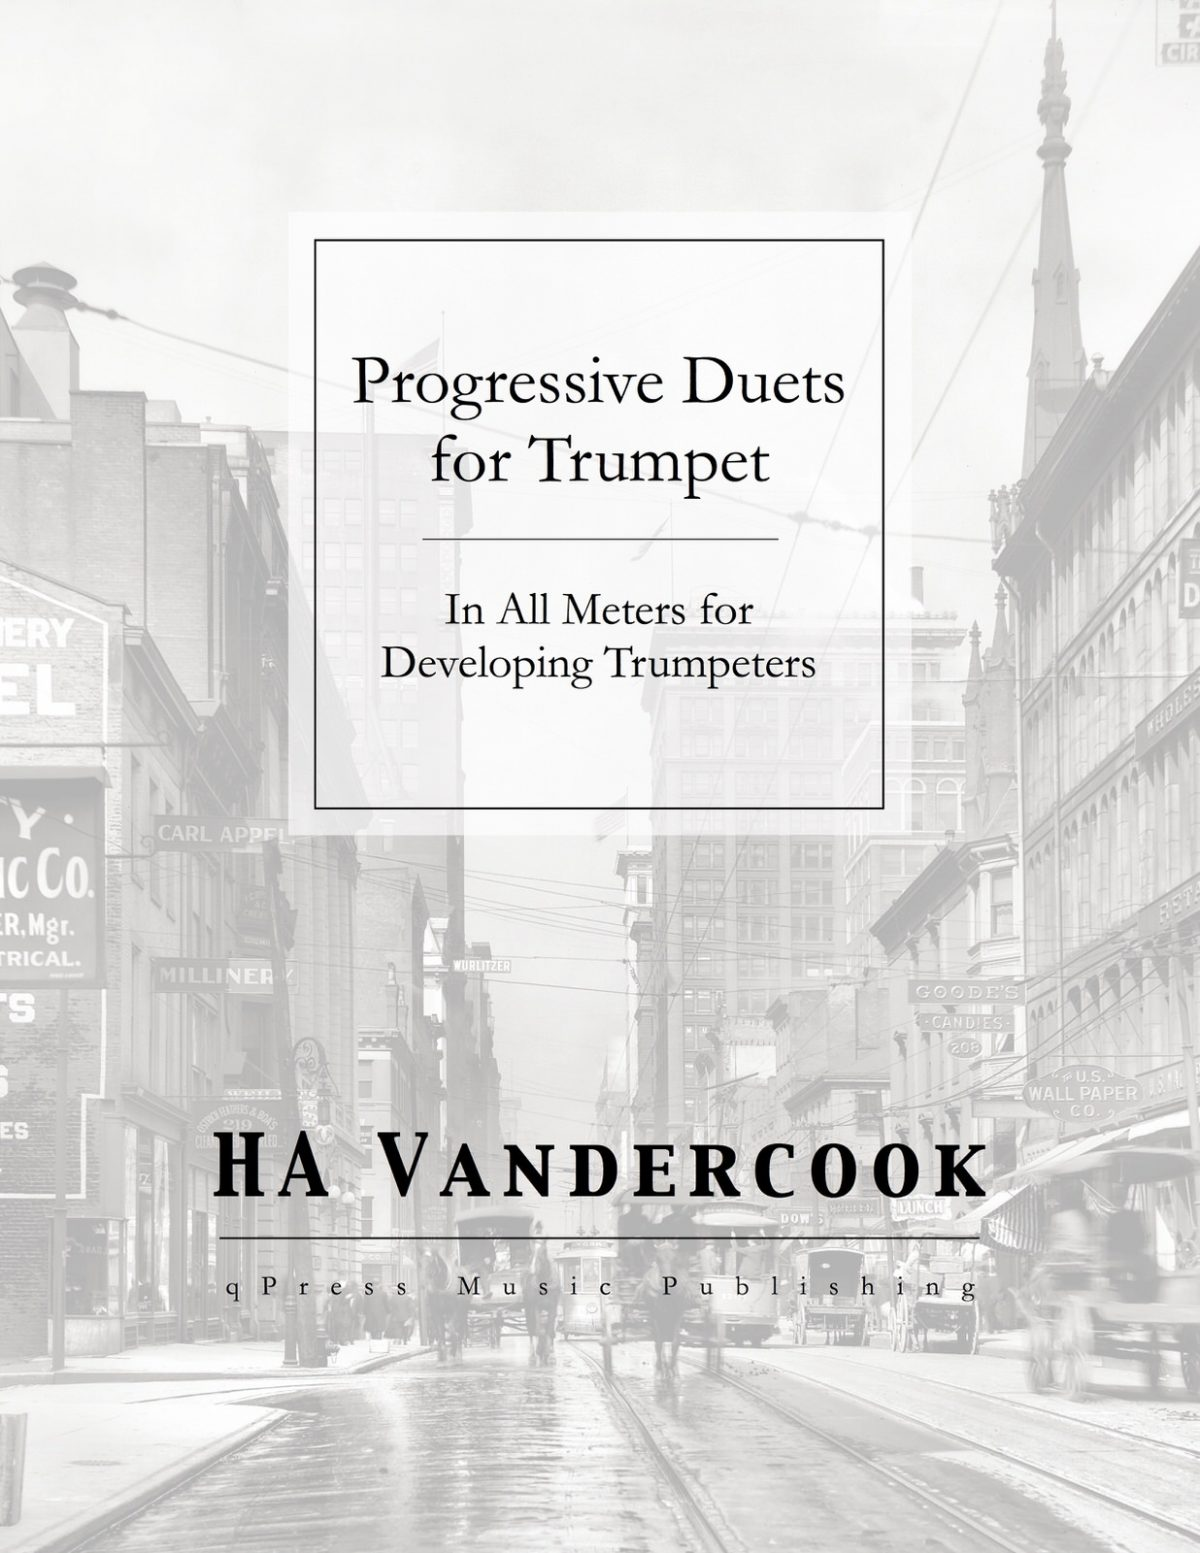 Vandercook, Progressive Duets for Trumpet-p01